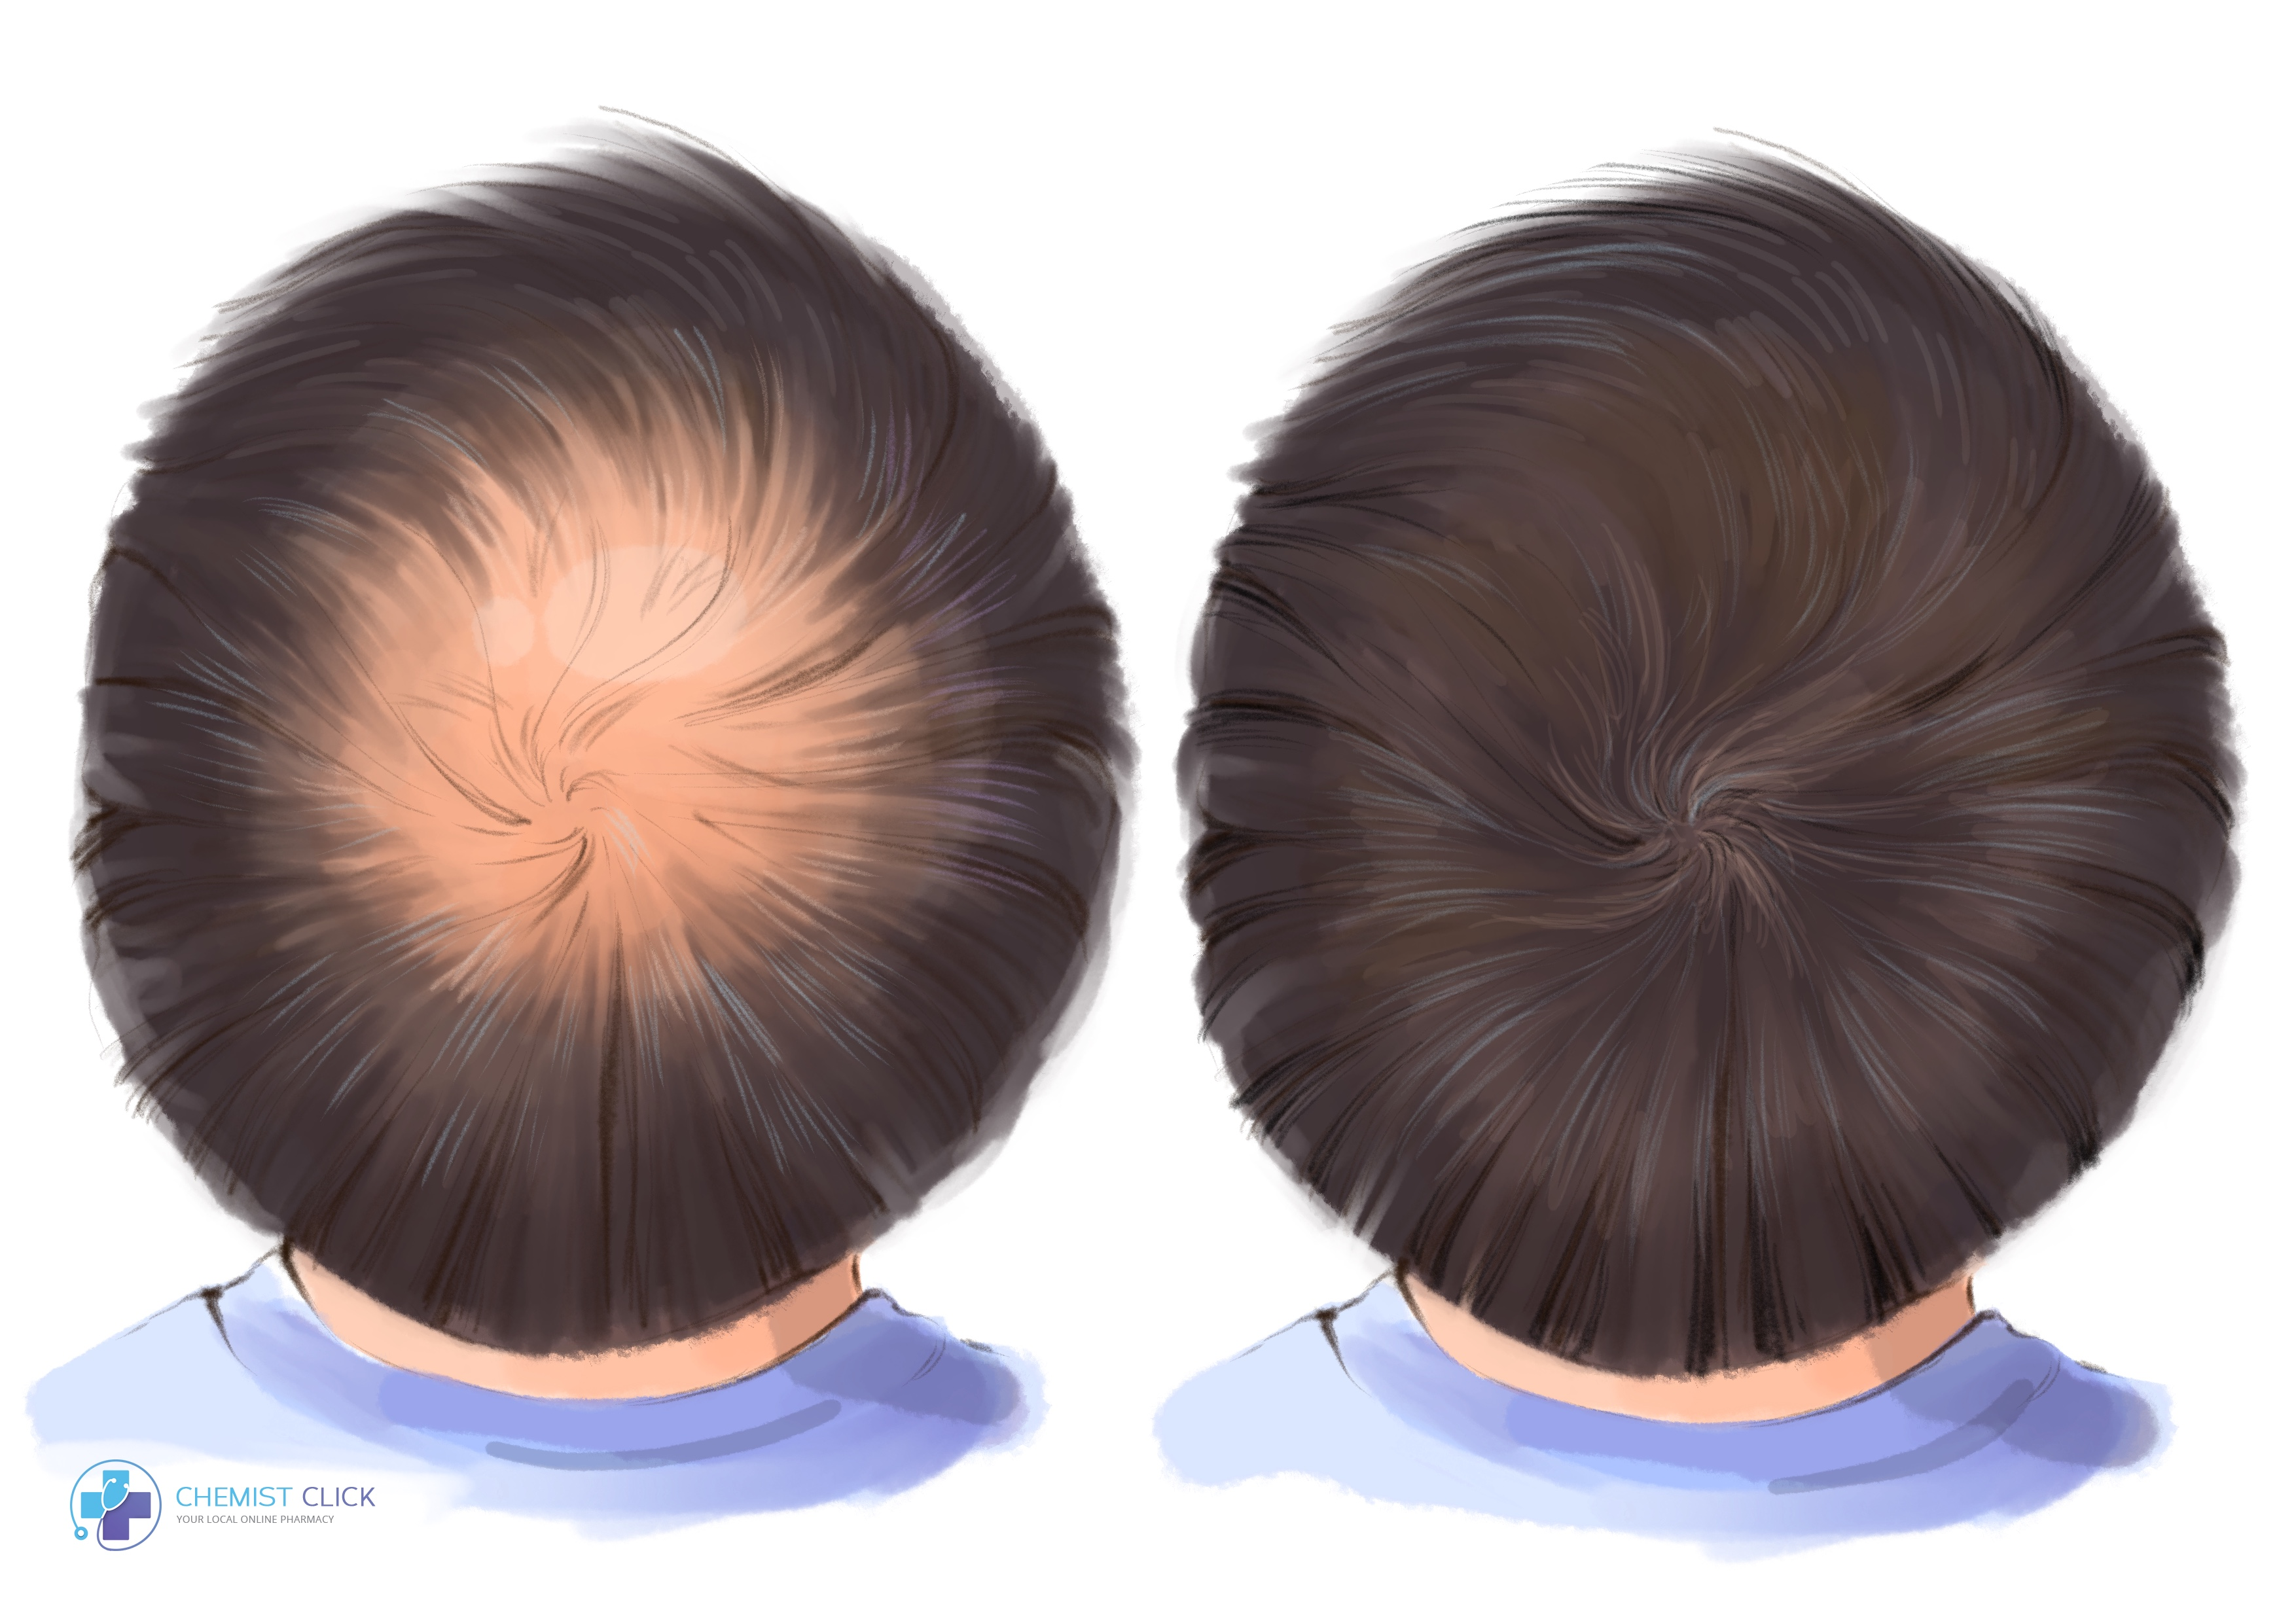 finasteride Propecia results before and after picture